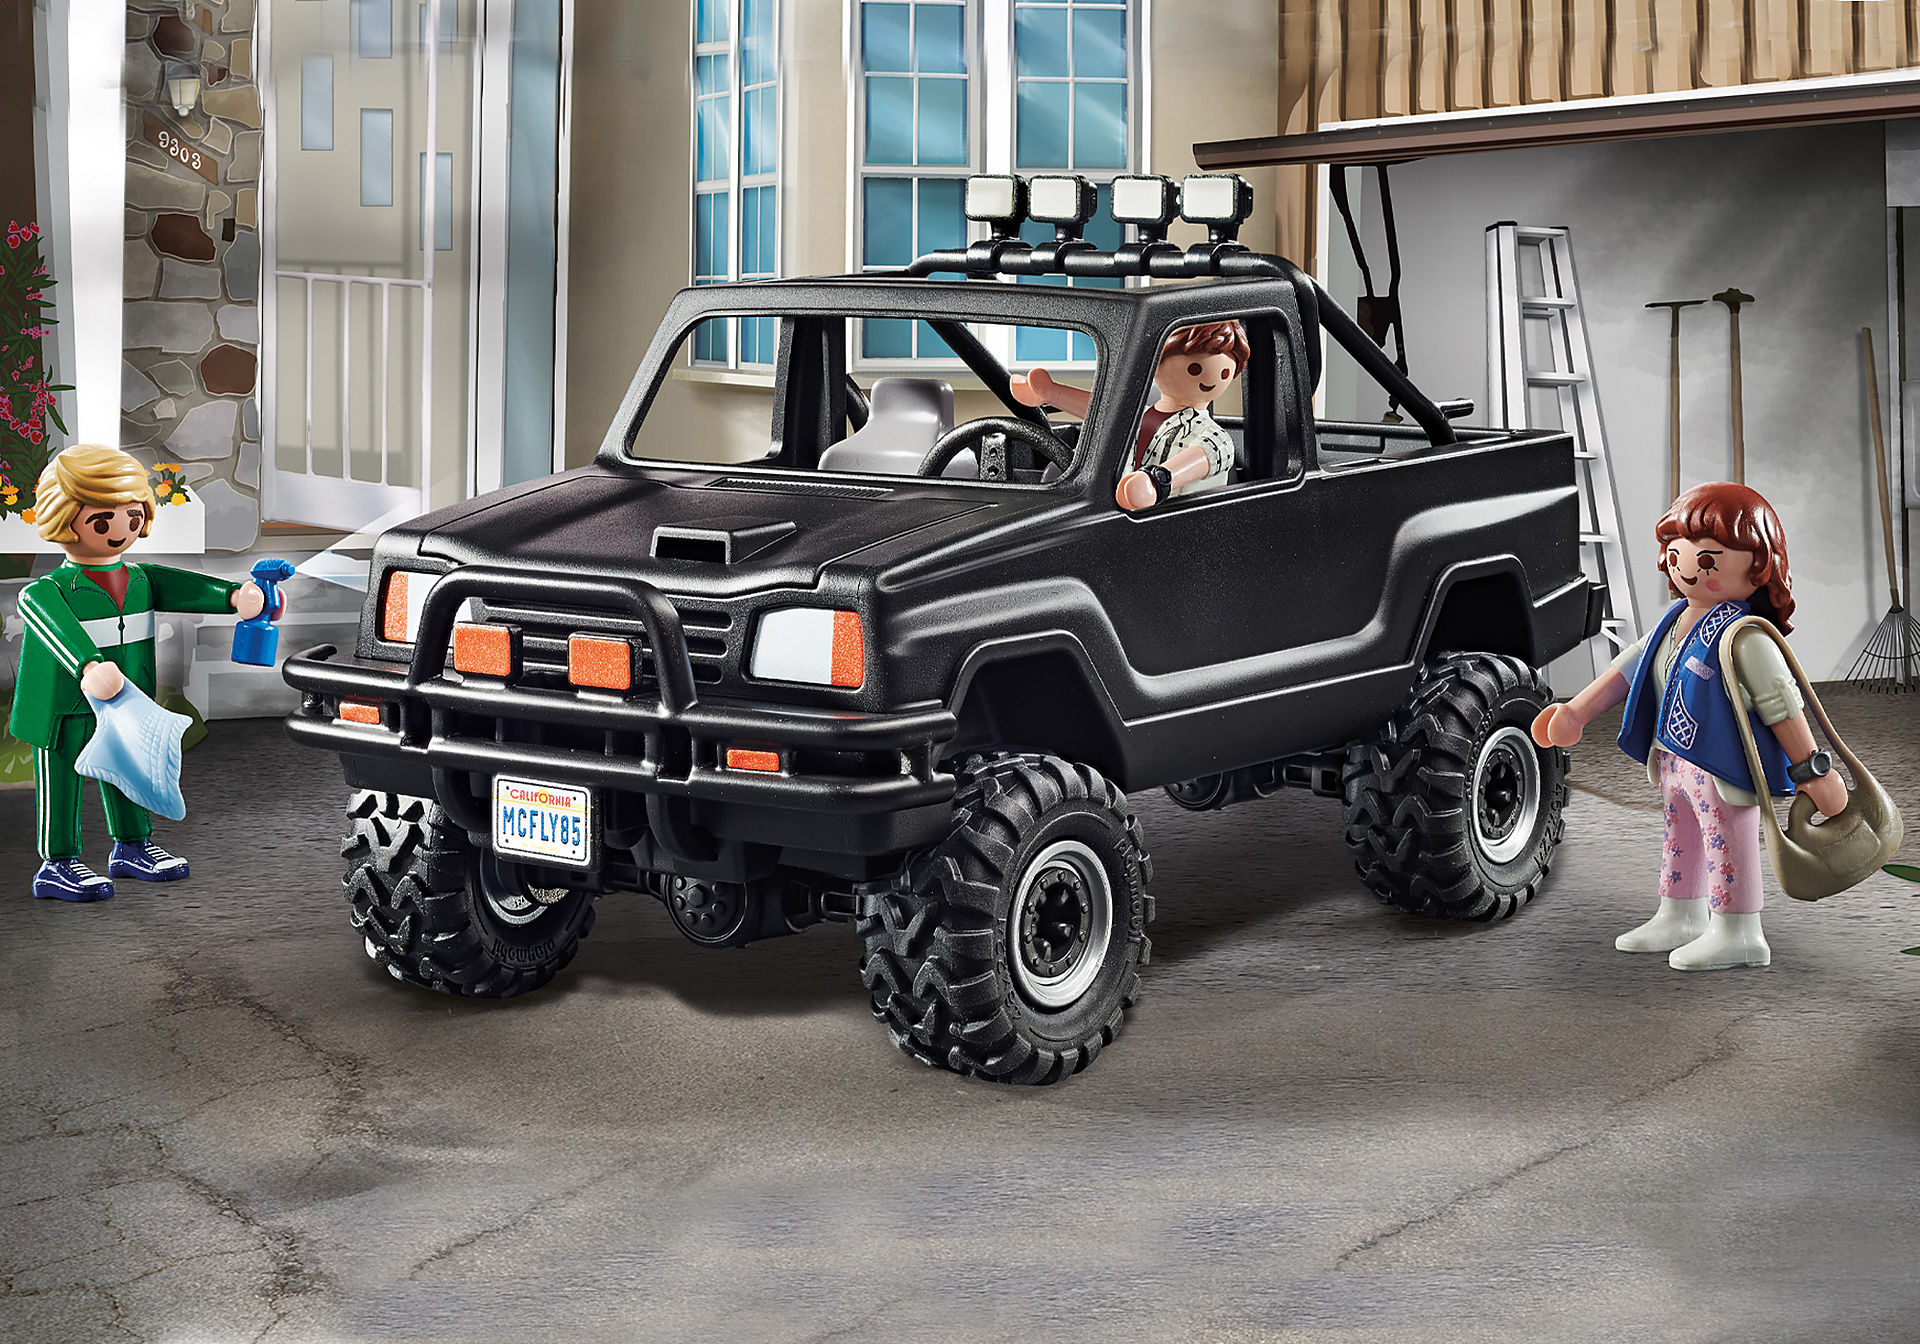 70633 Pick-up di Marty McFly zoom image1